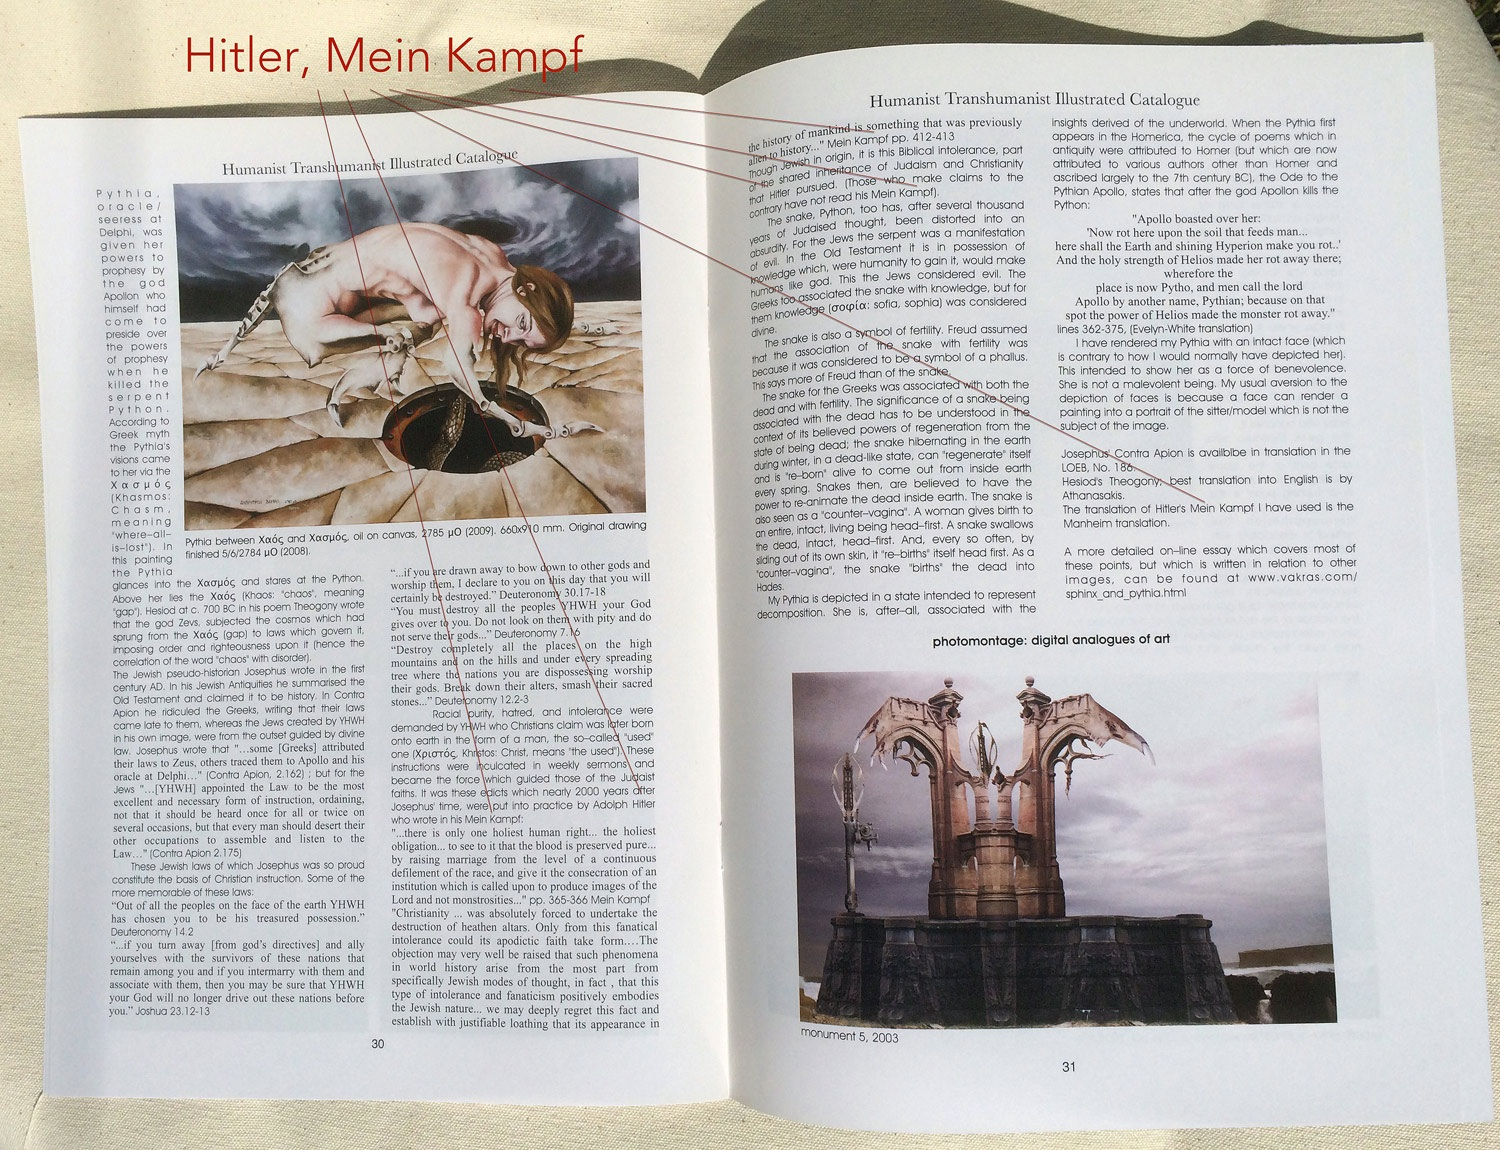 Humanist Transhumanist Hitler based his genocide on the Bible